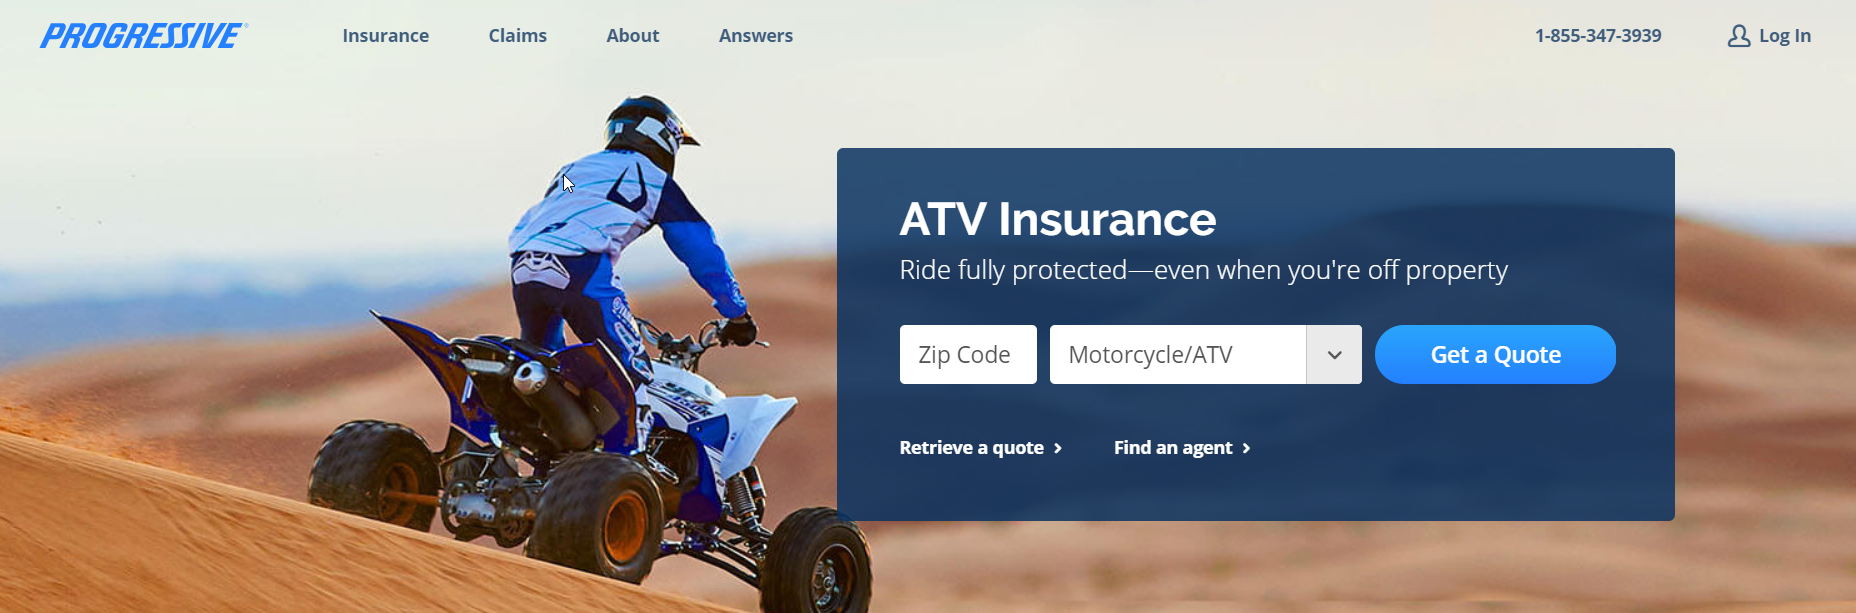 what-is-a-landing-page-atv-insurance